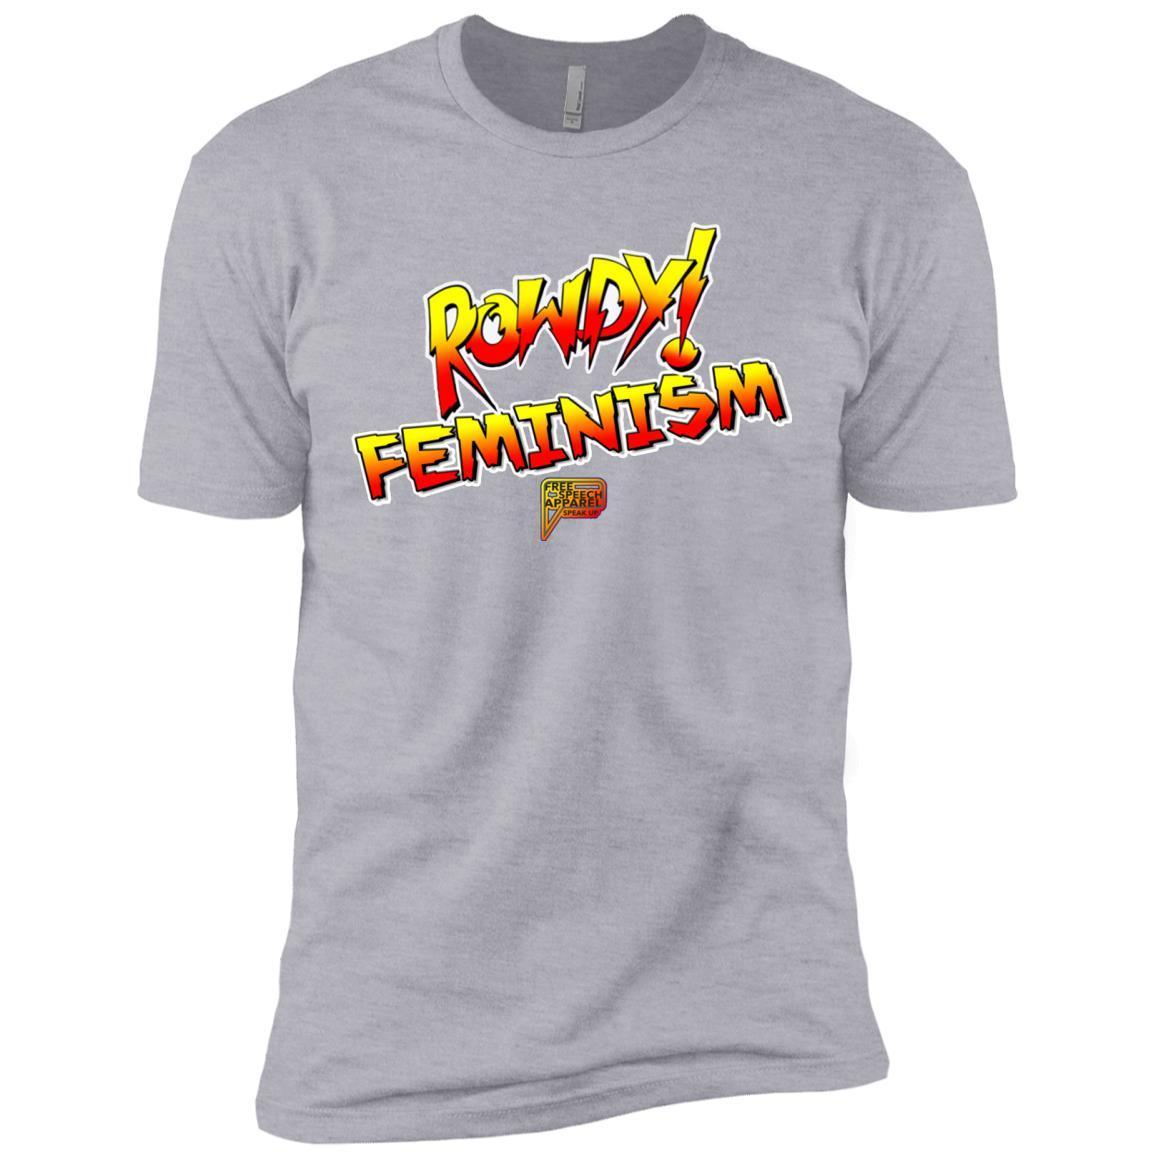 cc759195 CustomCat Apparel Men's Basic Tee-Shirt / Heather Grey / S Rowdy Feminism  Men's Basic